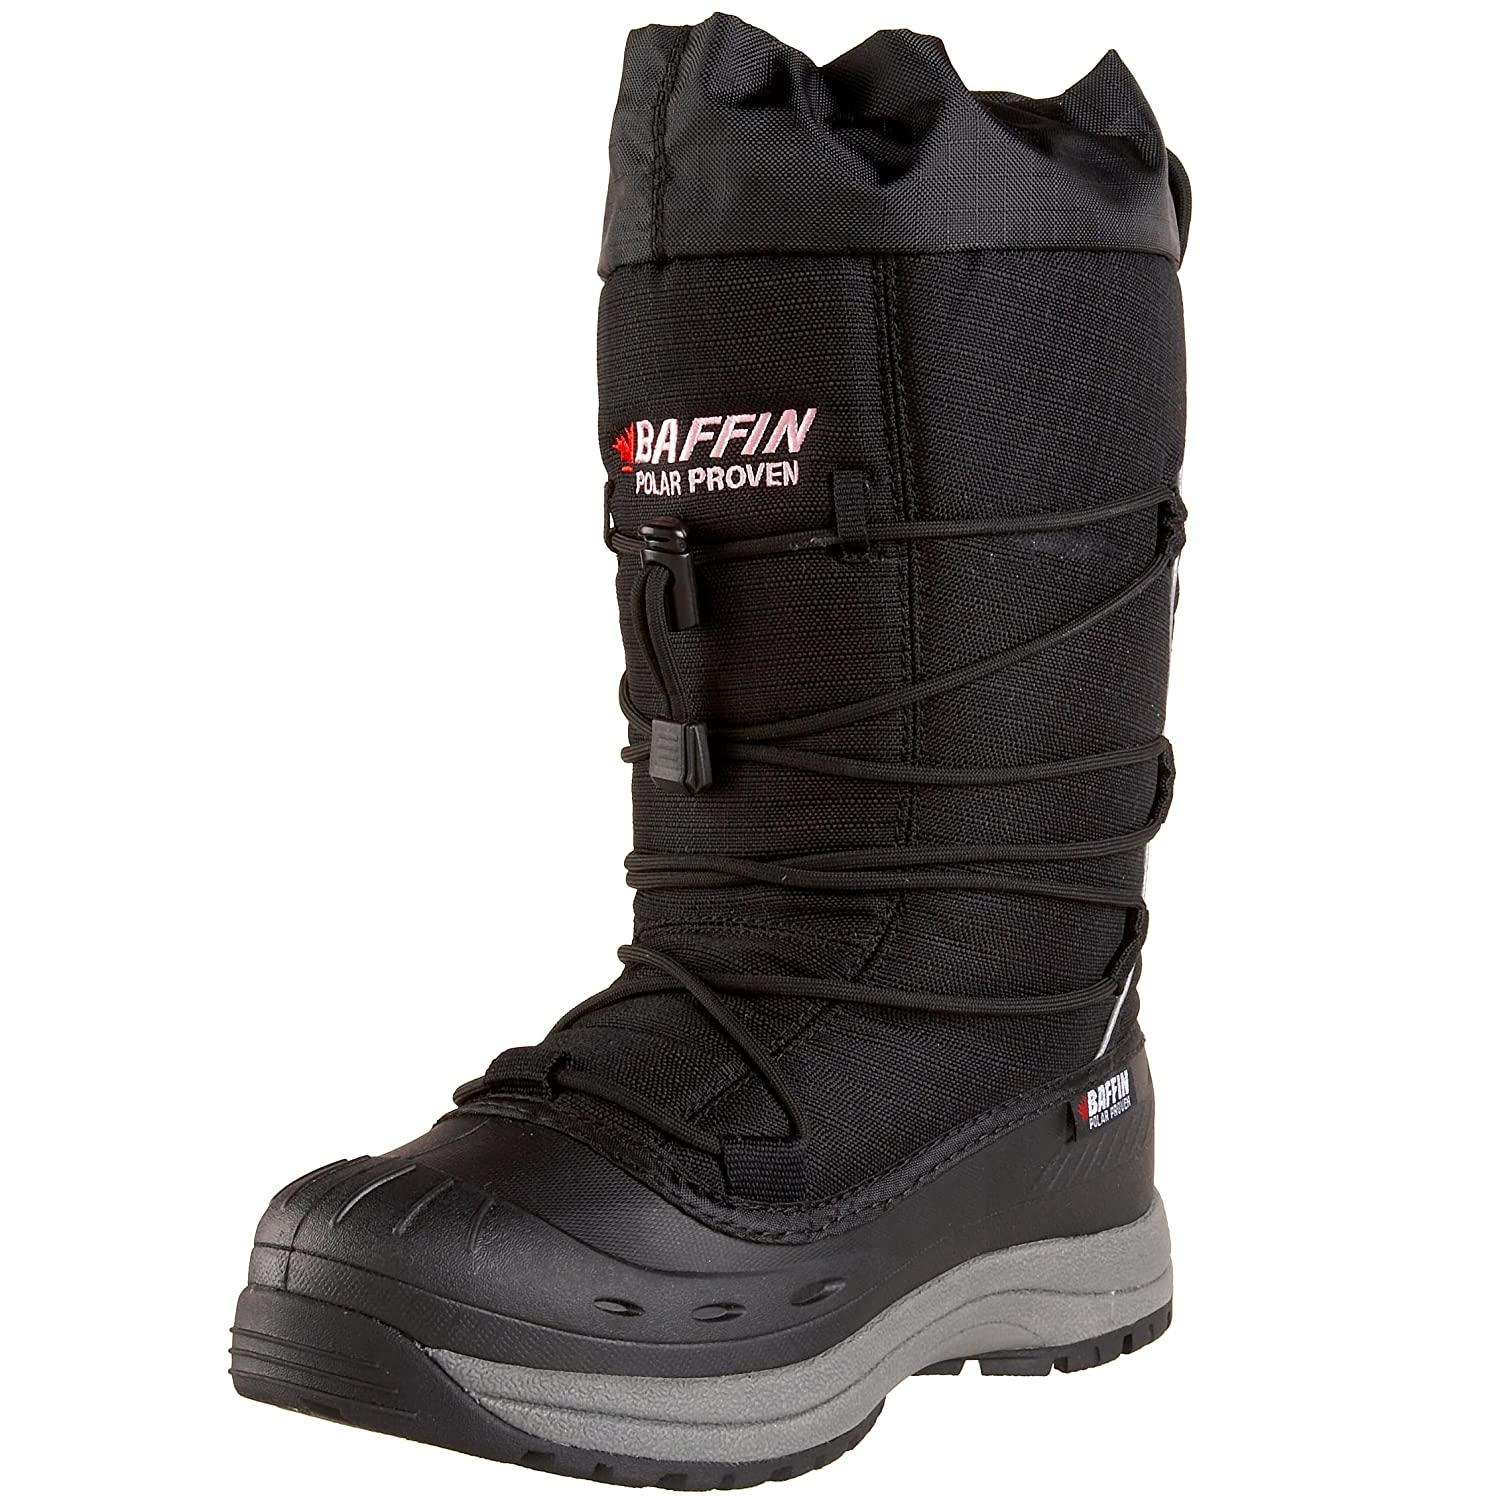 Baffin Women's Snogoose Winter Boot B002D48RRE 10 B(M) US|Black